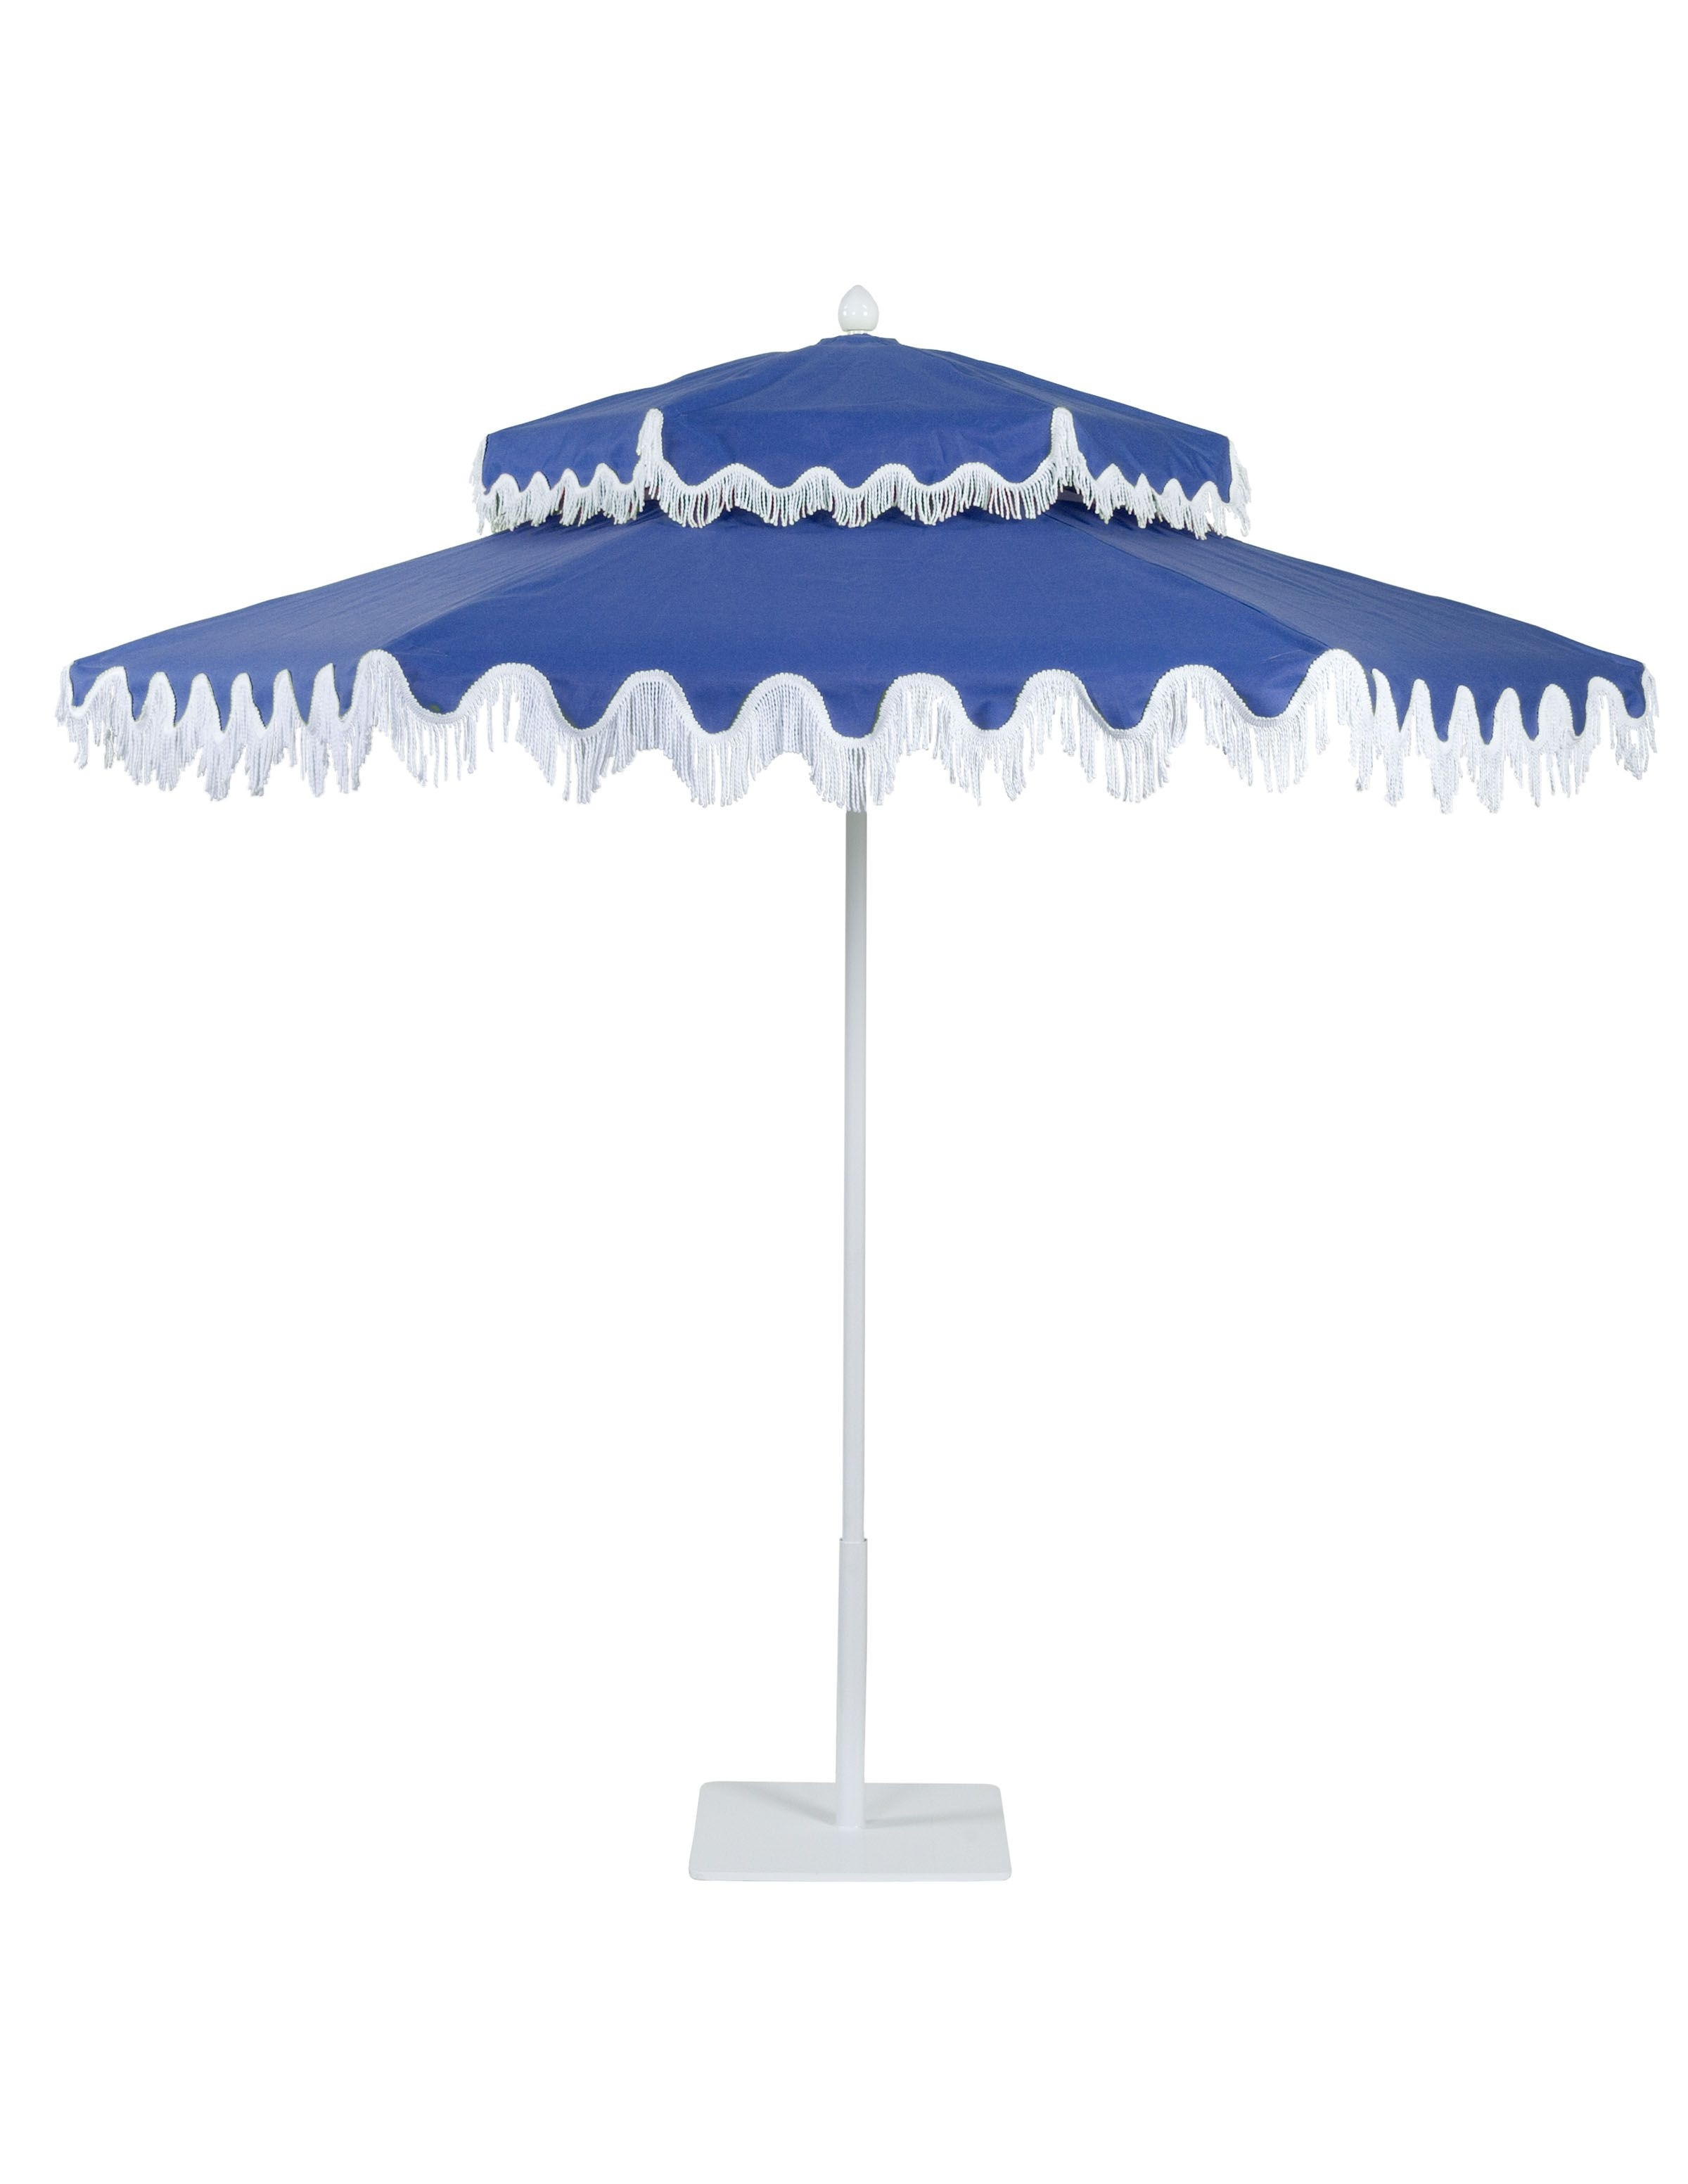 Patio Umbrellas With Fringe Pertaining To Popular 44 Patio Umbrella With Fringe Hm5k – Mcnamaralaw (View 8 of 20)